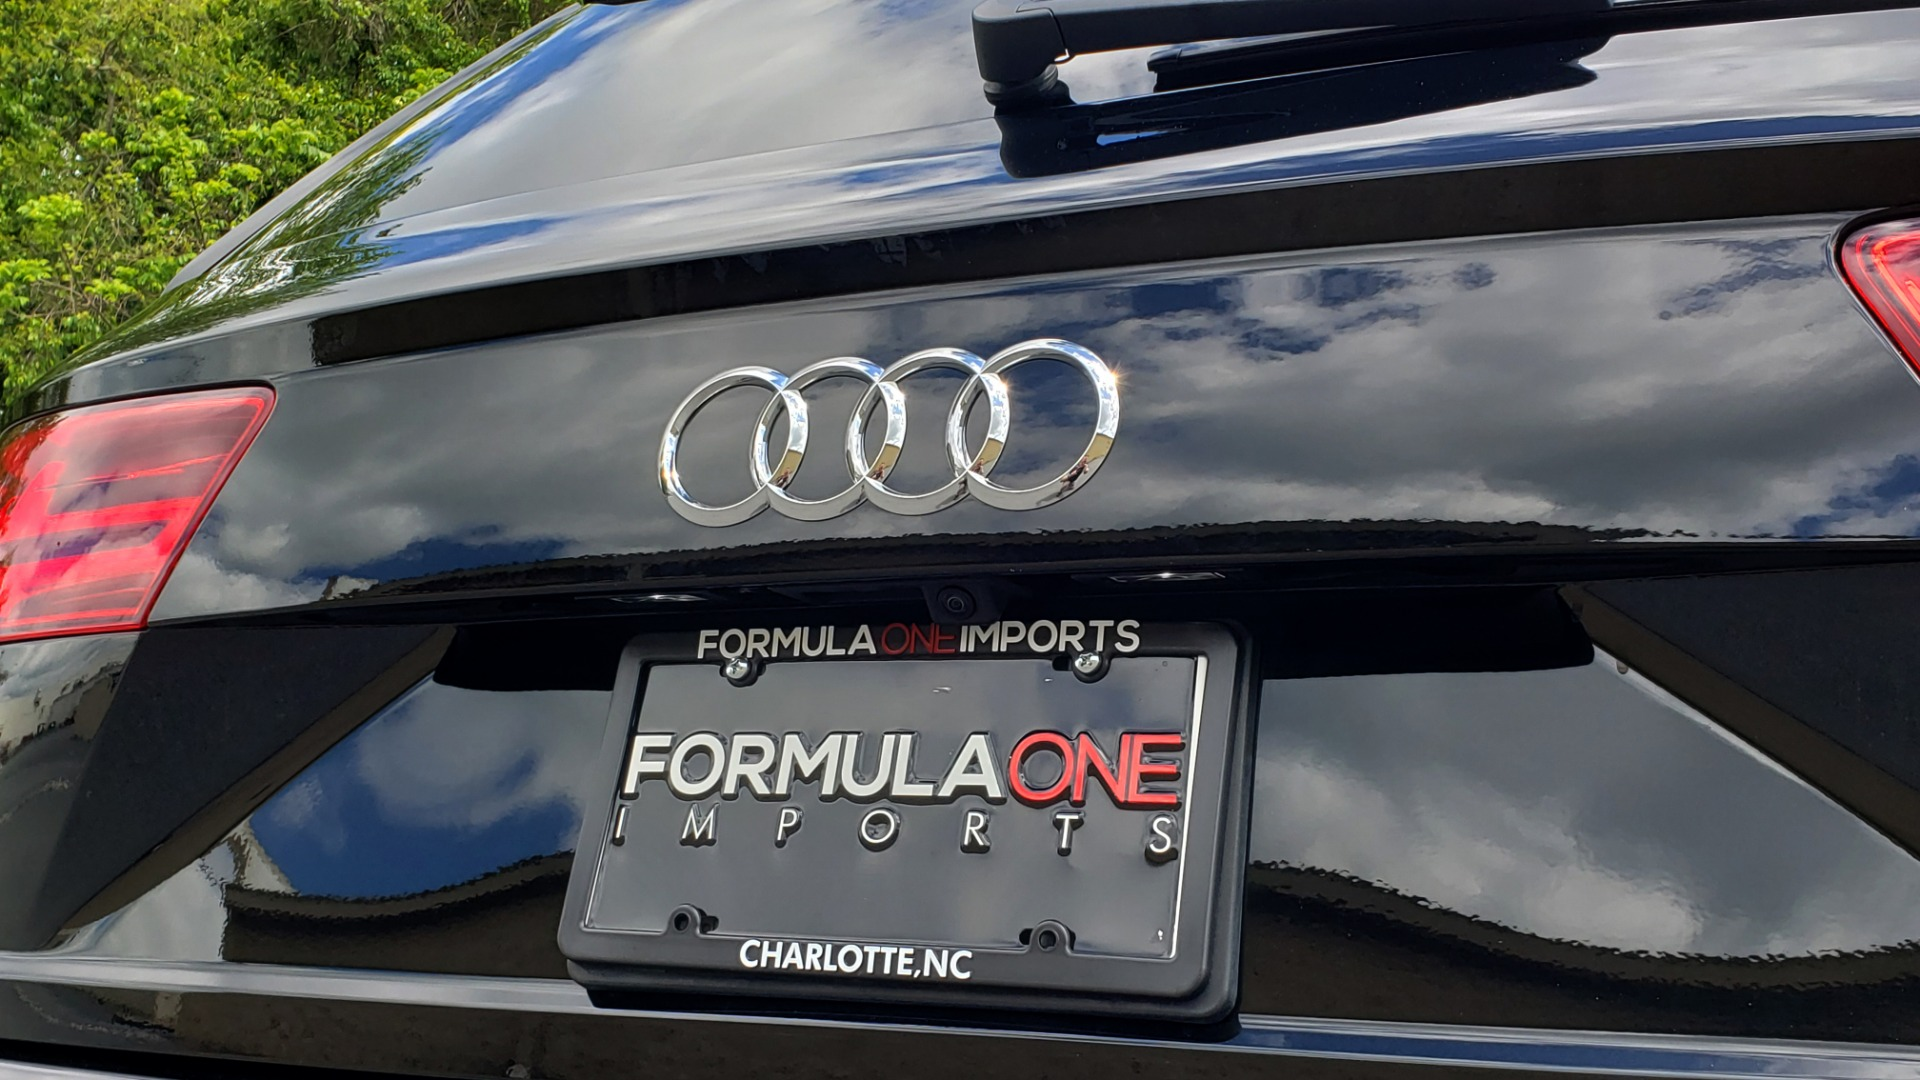 Used 2017 Audi Q7 PREMIUM PLUS / VISION PKG / NAV / PANO-ROOF / 3-ROW / REARVIEW for sale Sold at Formula Imports in Charlotte NC 28227 30